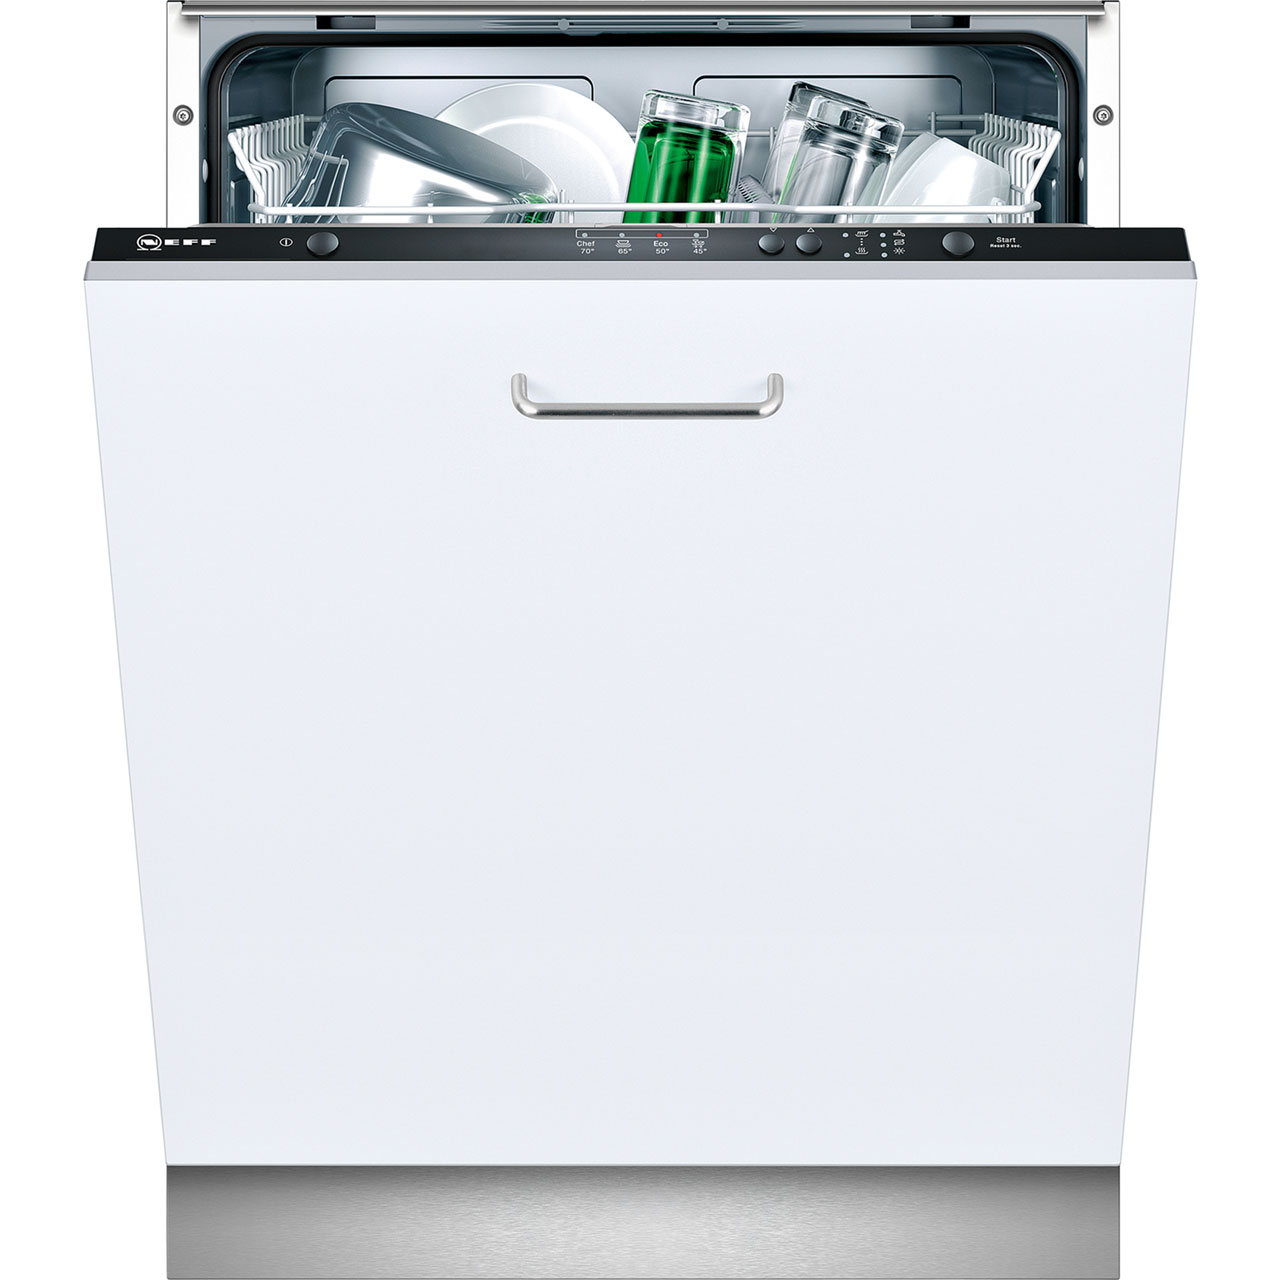 buy cheap neff dishwasher compare dishwashers prices for. Black Bedroom Furniture Sets. Home Design Ideas